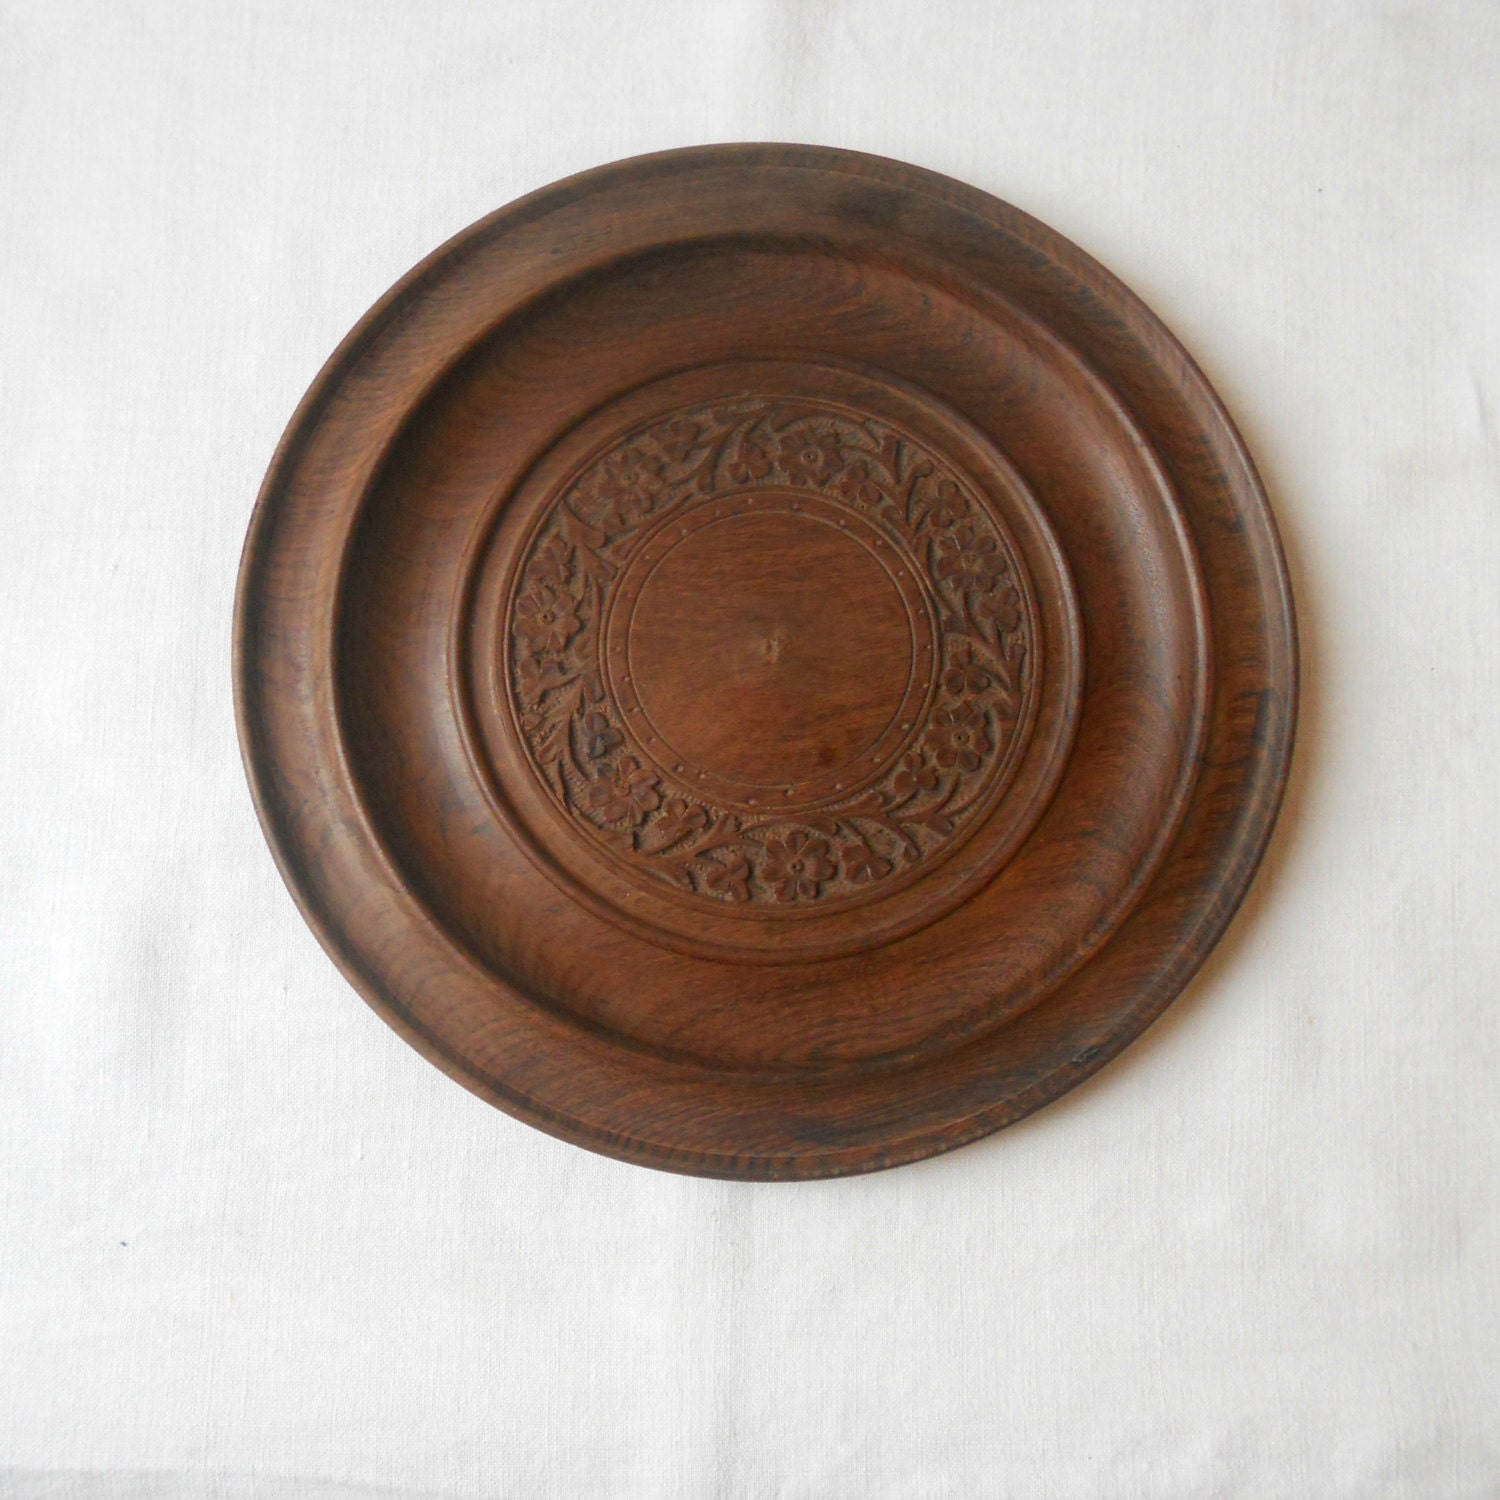 Hand Carved Antique Wooden Bowl Tray Plate With Floral